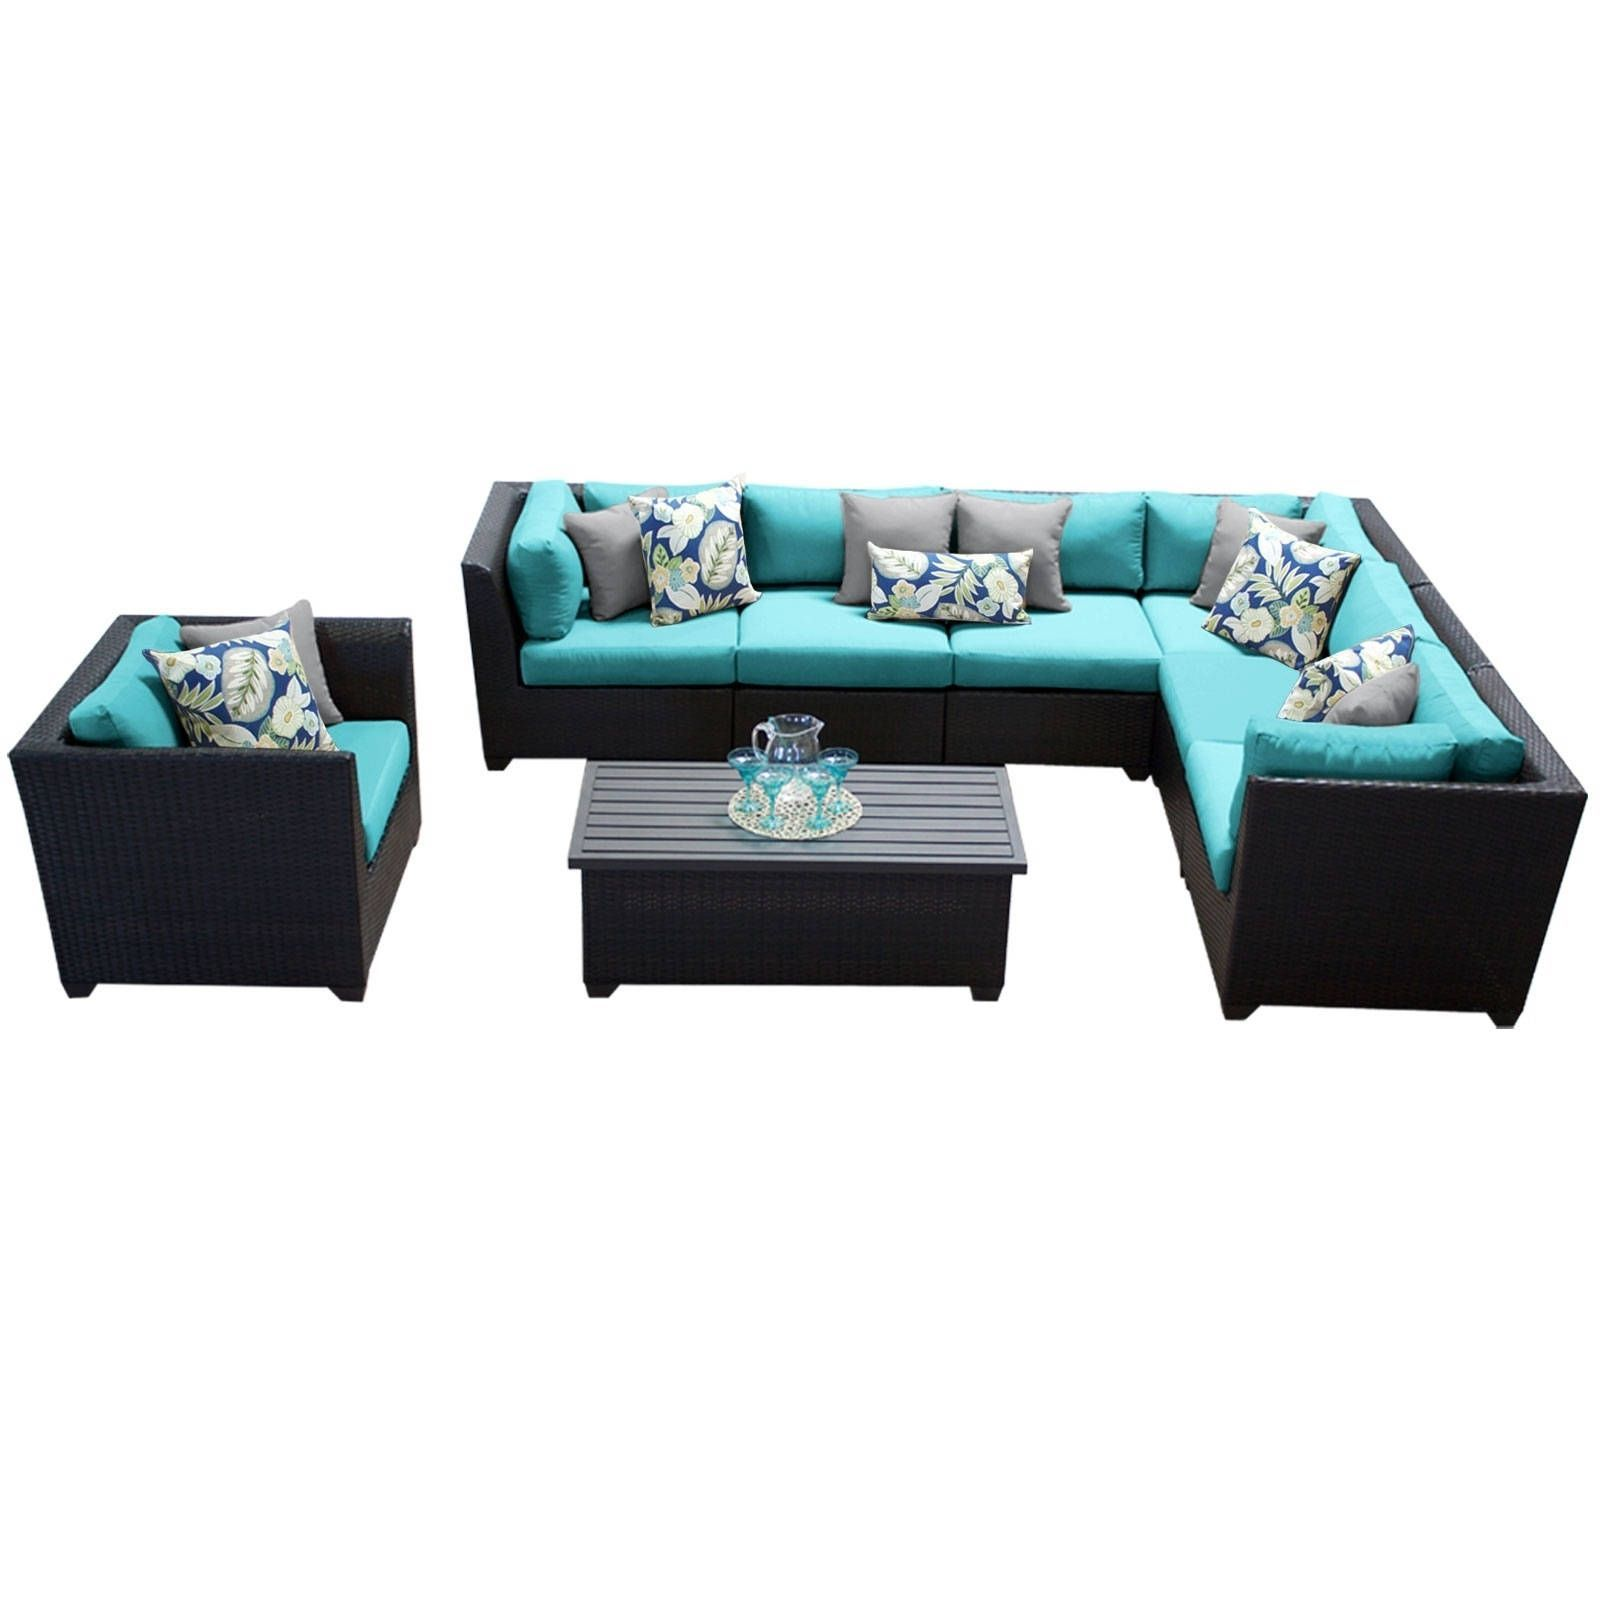 luxurypatio modern rattan tommy bahama outdoor furniture. Meridian 8 Piece Outdoor Patio Wicker Sectional With Arm Chair And Storage Table (Turquoise) Luxurypatio Modern Rattan Tommy Bahama Furniture M